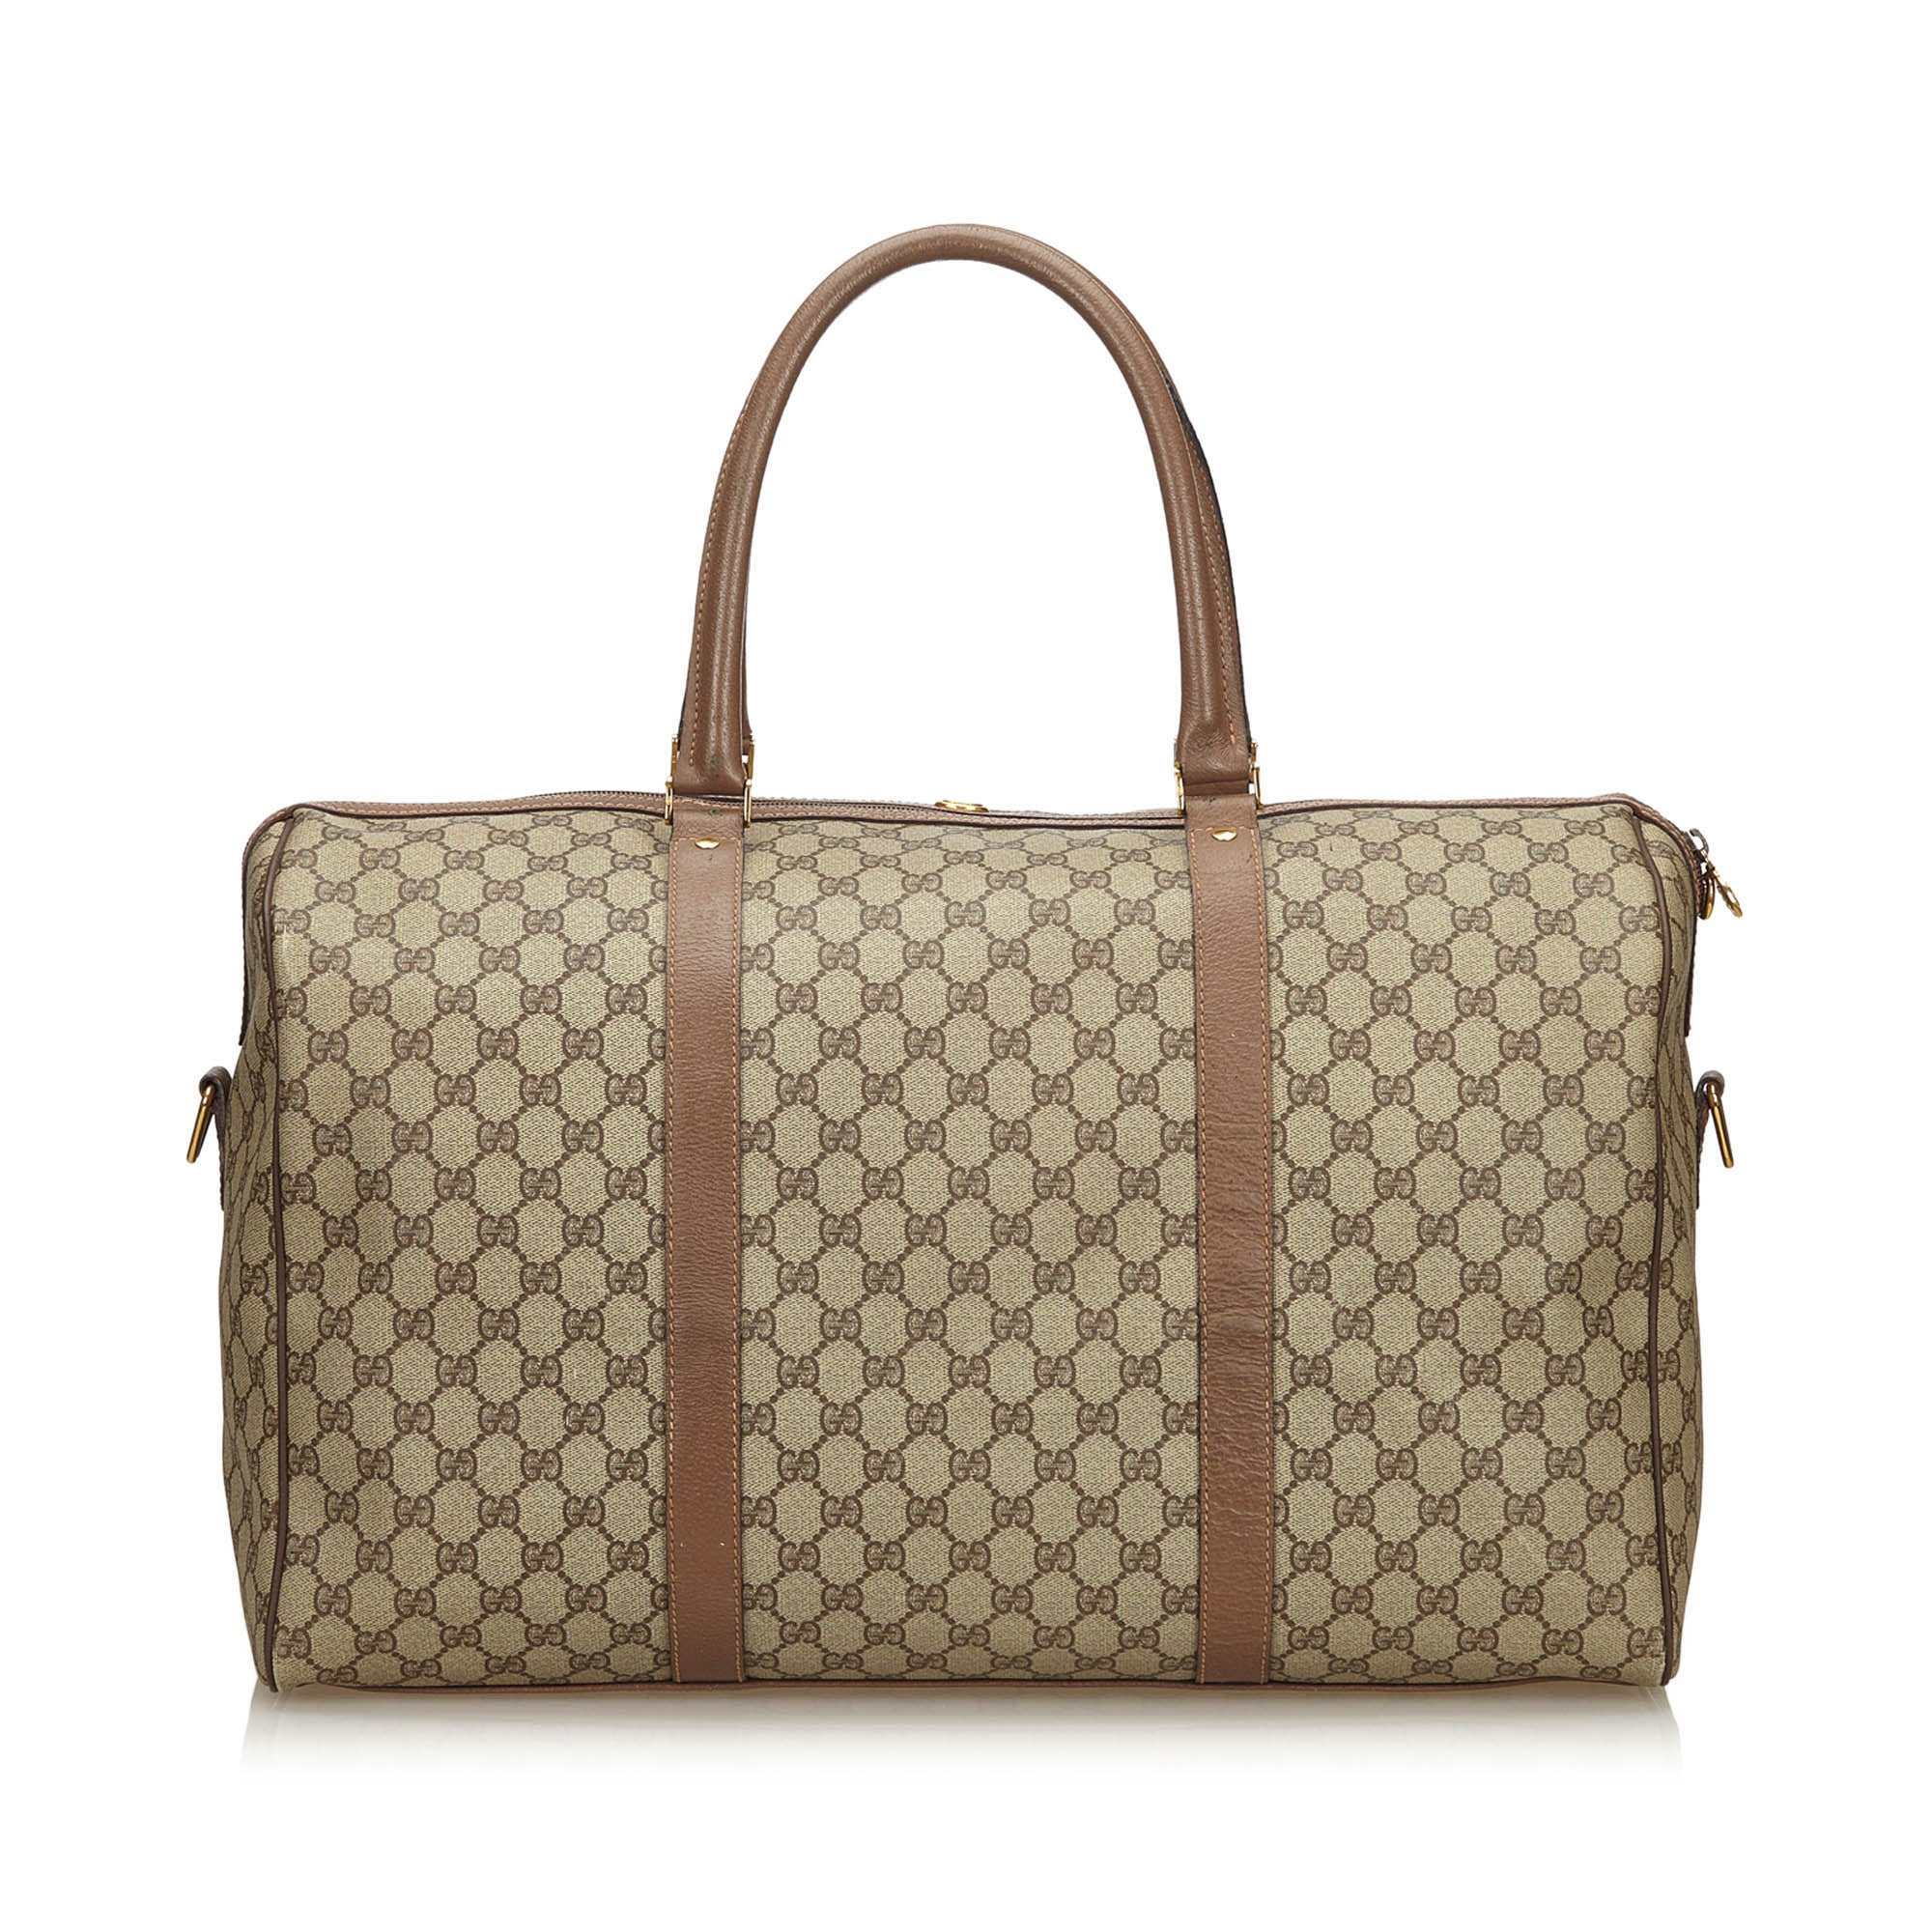 a5725d796333 Gucci Brown Guccissima Duffle Bag For Sale at 1stdibs